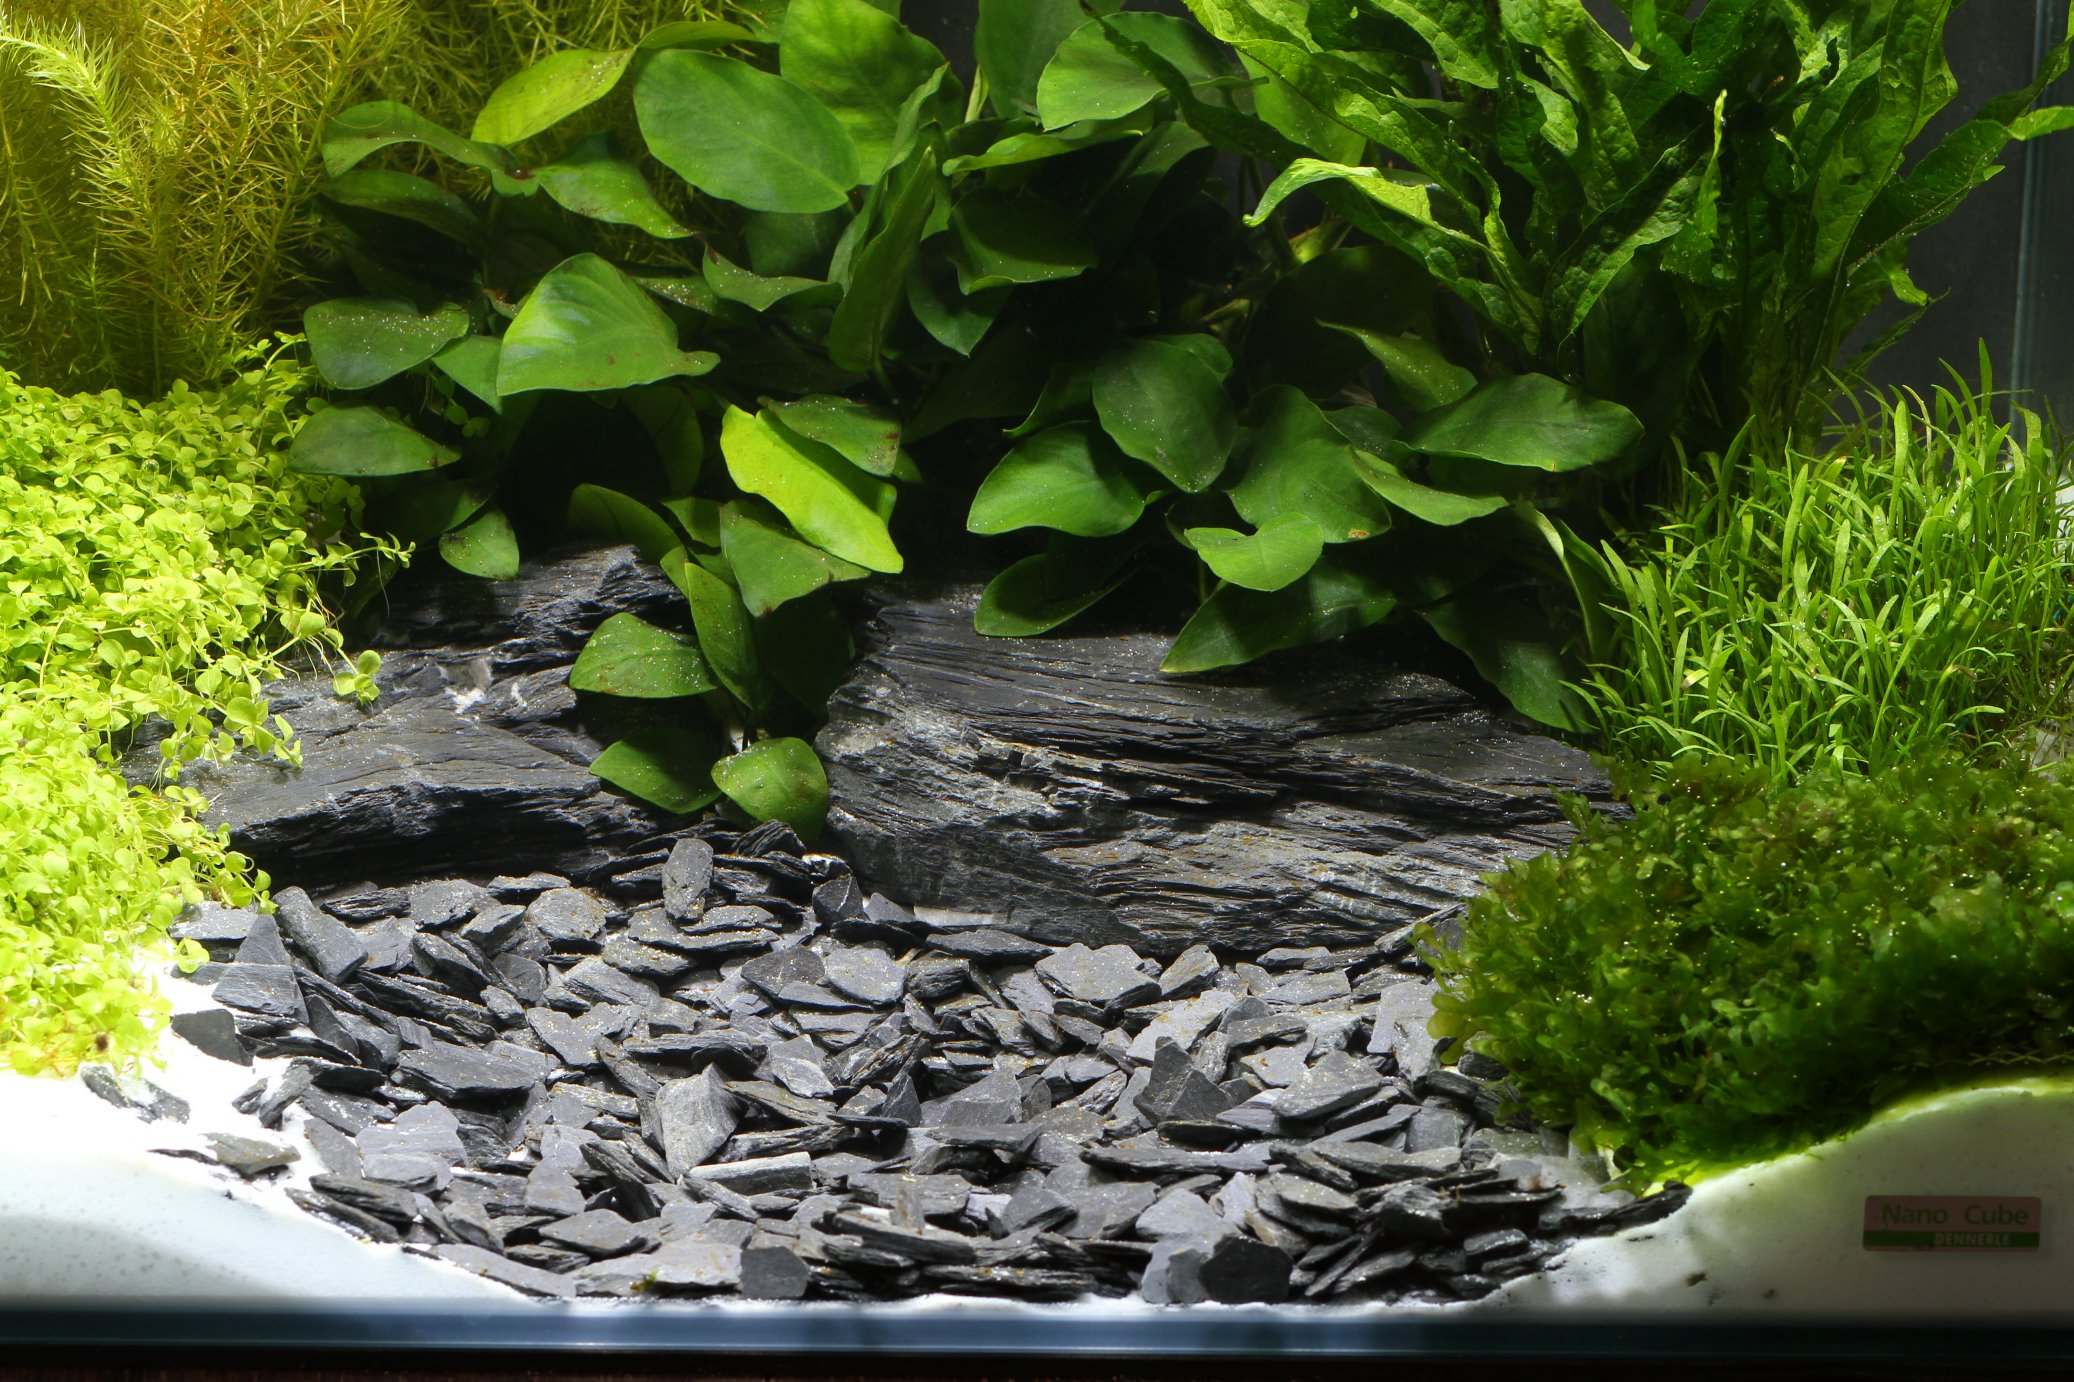 Dennerle baikal natural gravel plantahunter for Gravier pour aquarium